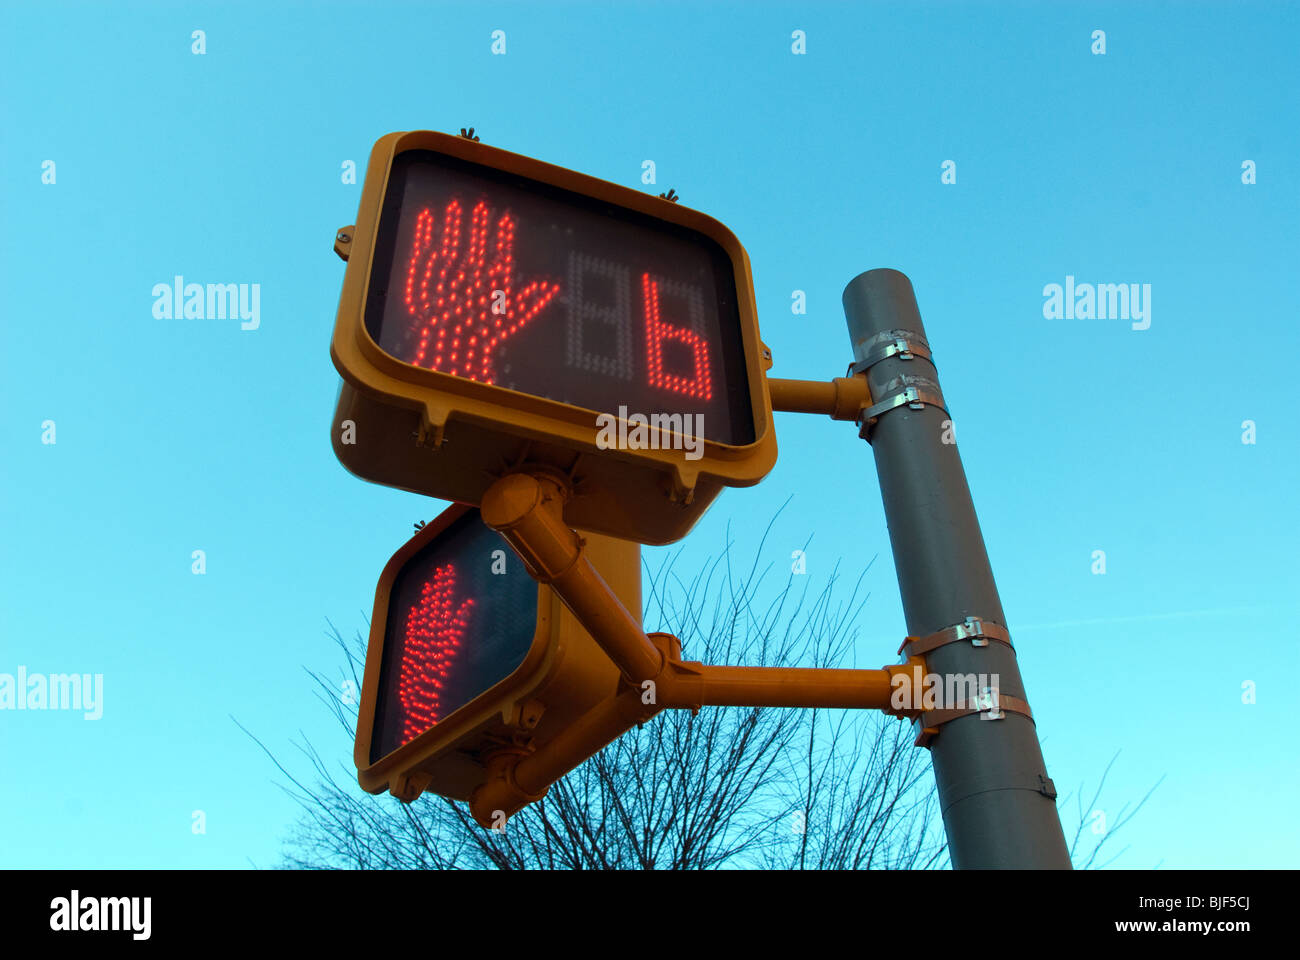 A pedestrian walk-don't walk sign with a seconds countdown is seen on a street corner near Union Square in New - Stock Image